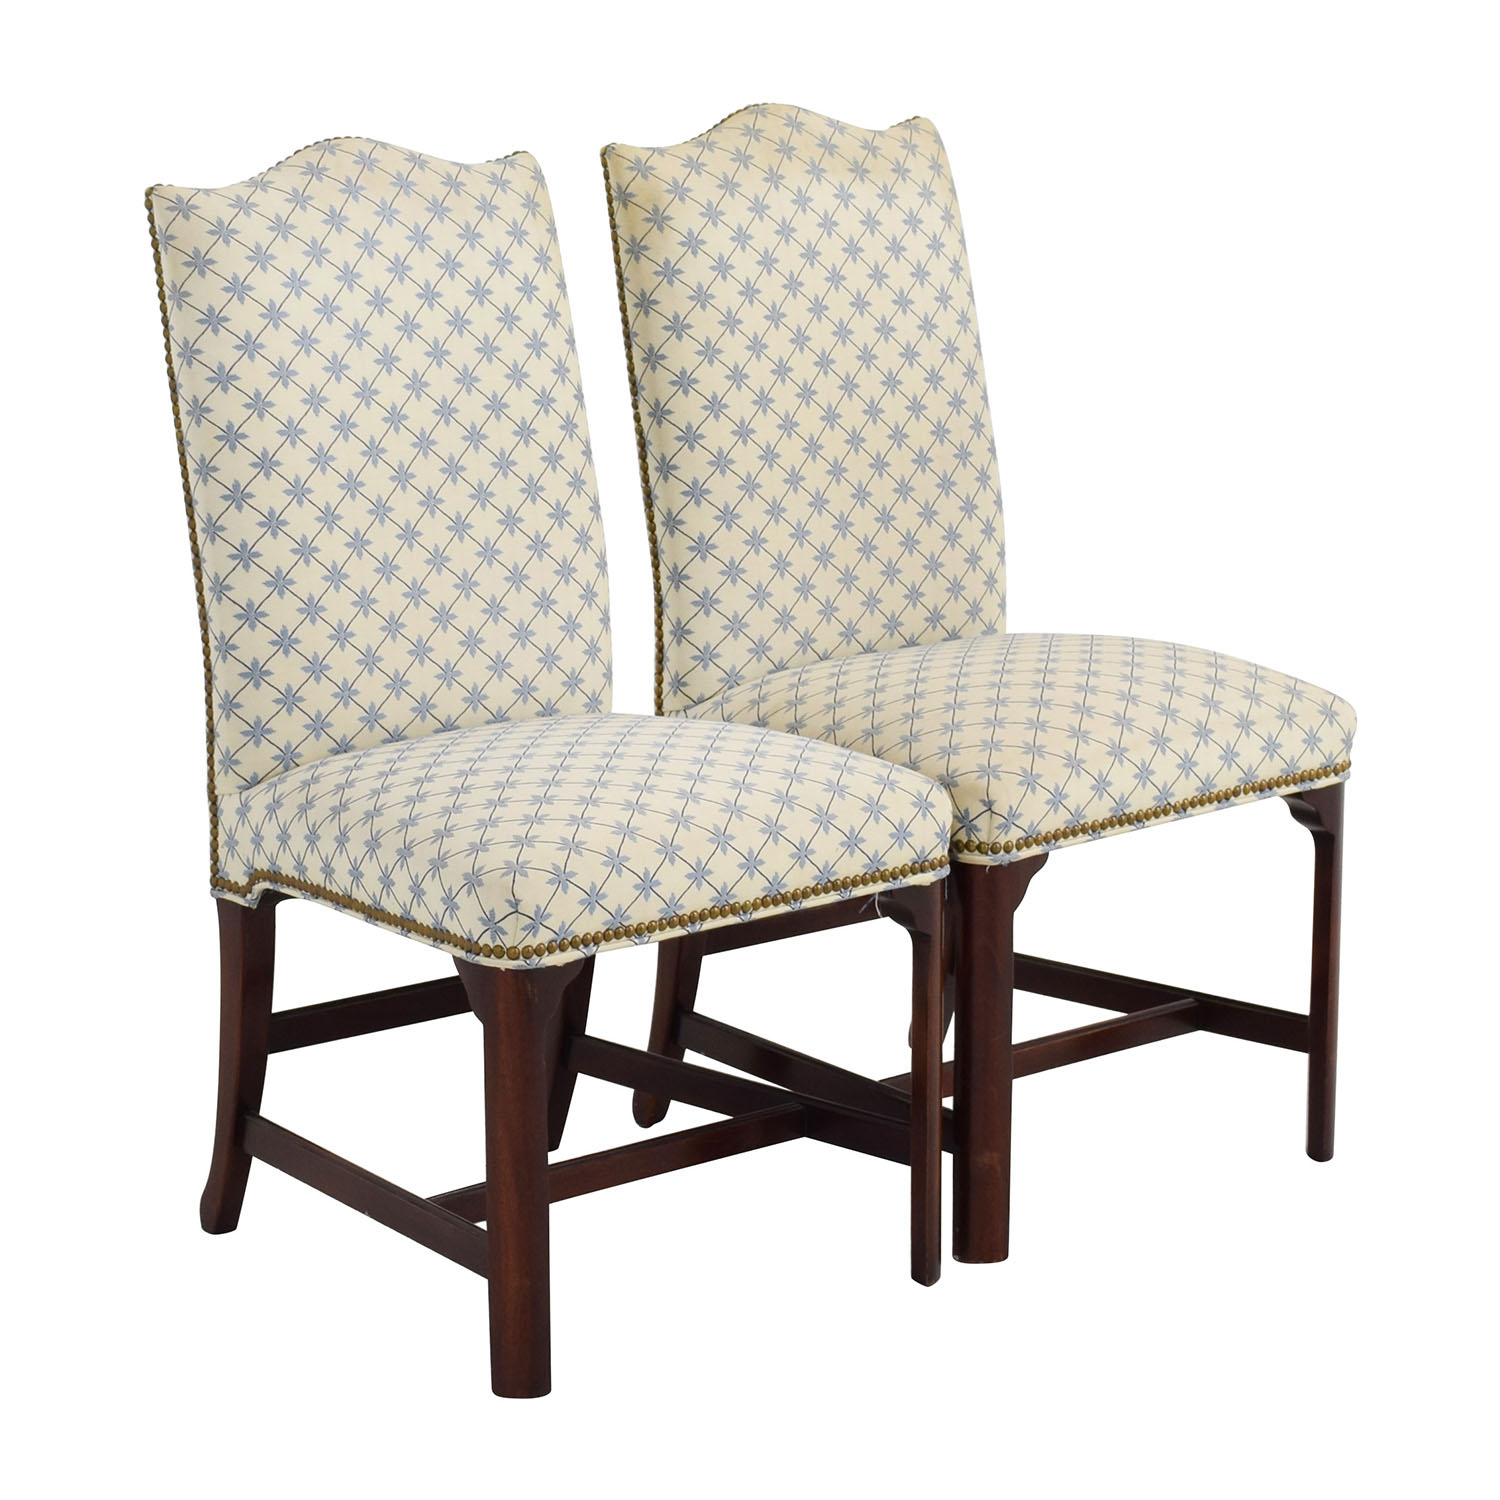 88 off hickory chair hickory chair bespoke upholstered occasional chairs chairs for Hickory chair bedroom furniture